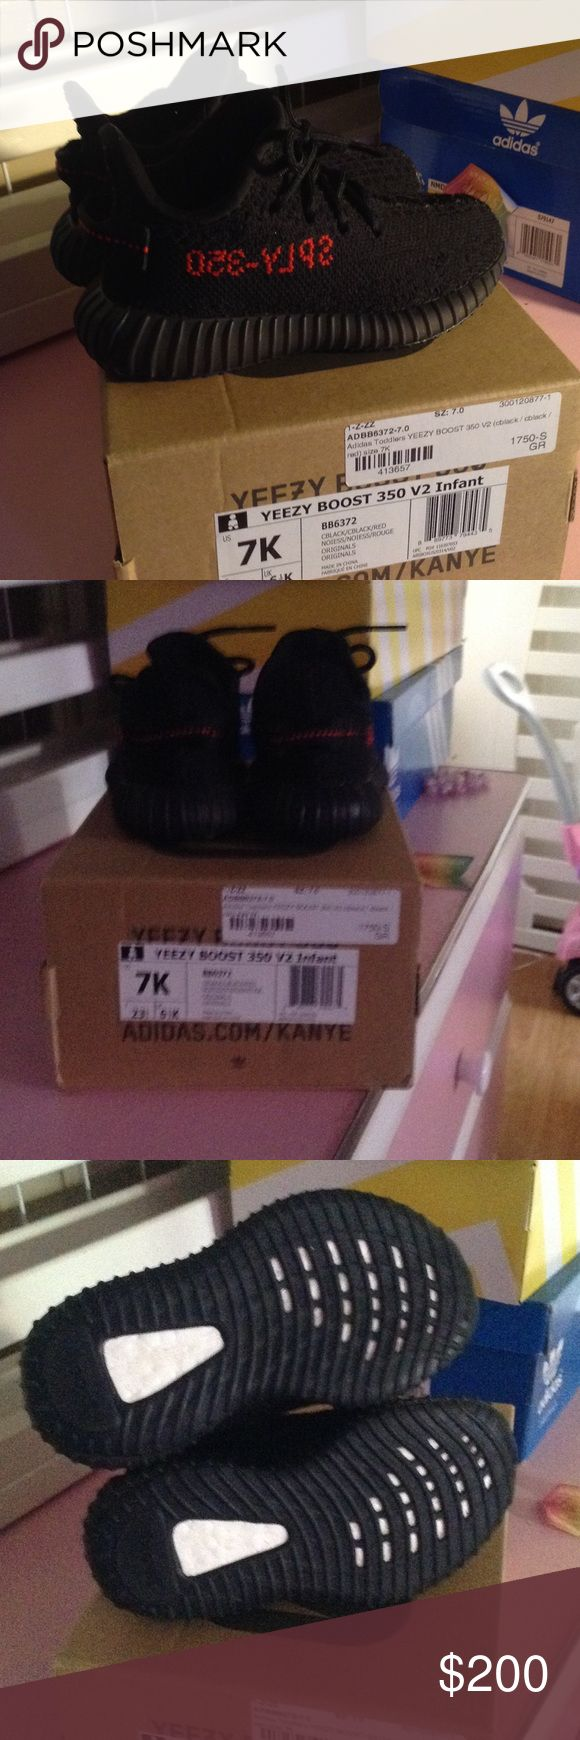 Adidas Yeezy Boost 350 Bred Black Red 7 Kids Adidas Yeezy Boost 350 Size 7K 100% Authentic. Baby just out grew them so fast. Used a couple times can't even tell they are used.                                   Ignore: Adidas Nike Jordan Retro Ultra Boost NMD Shoes Sneakers